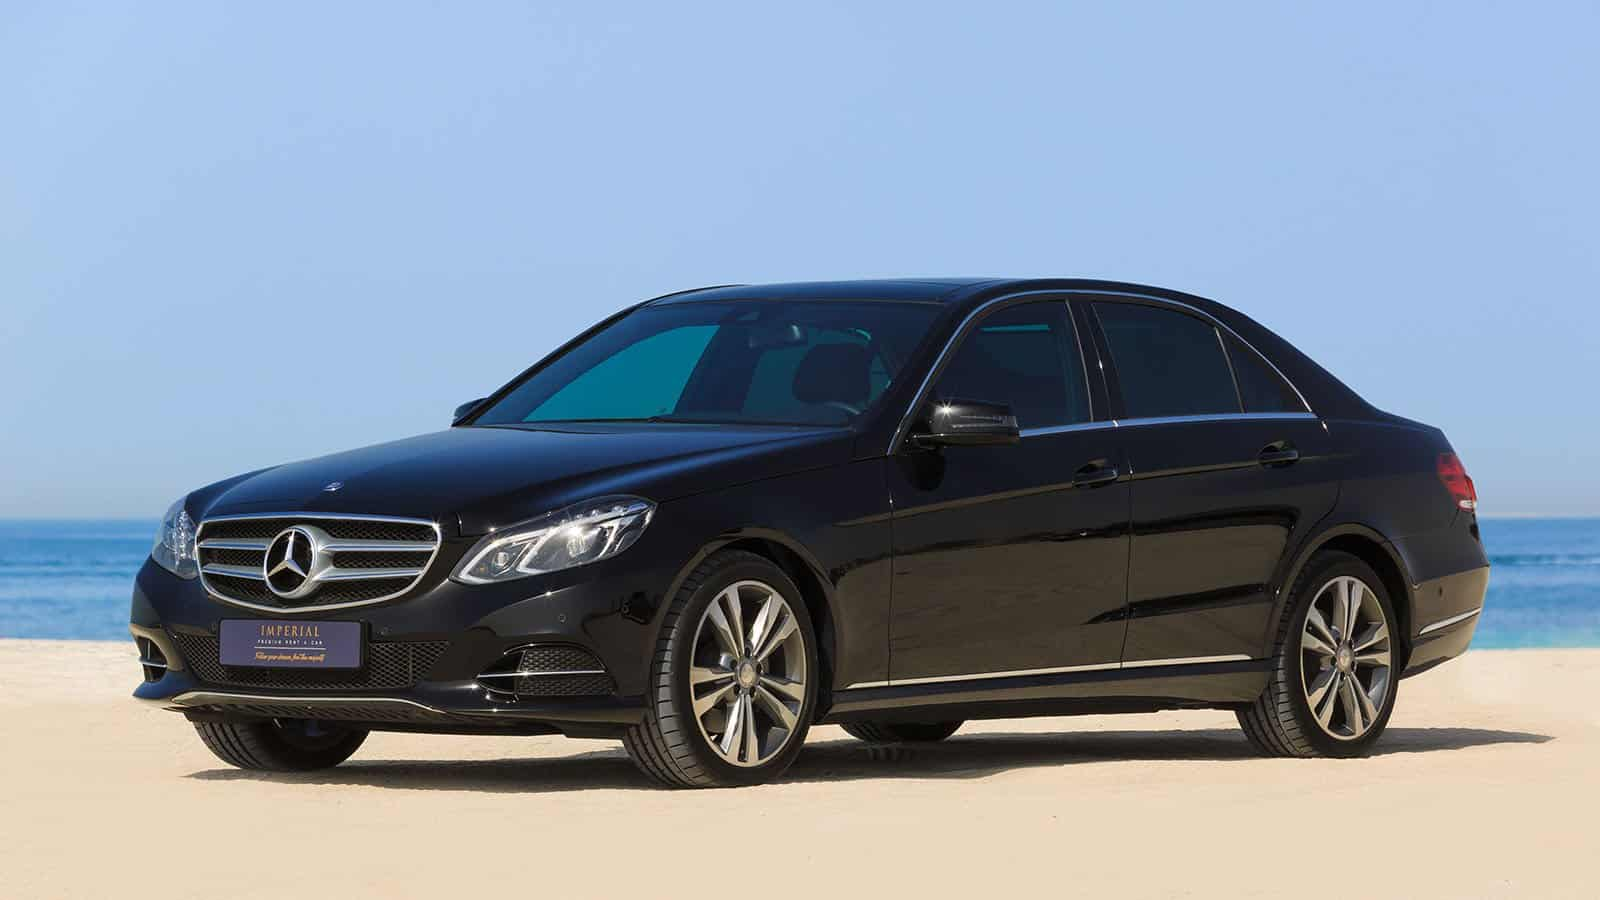 Mercedes Benz E Class Rent Dubai Imperial Premium Rent A Car